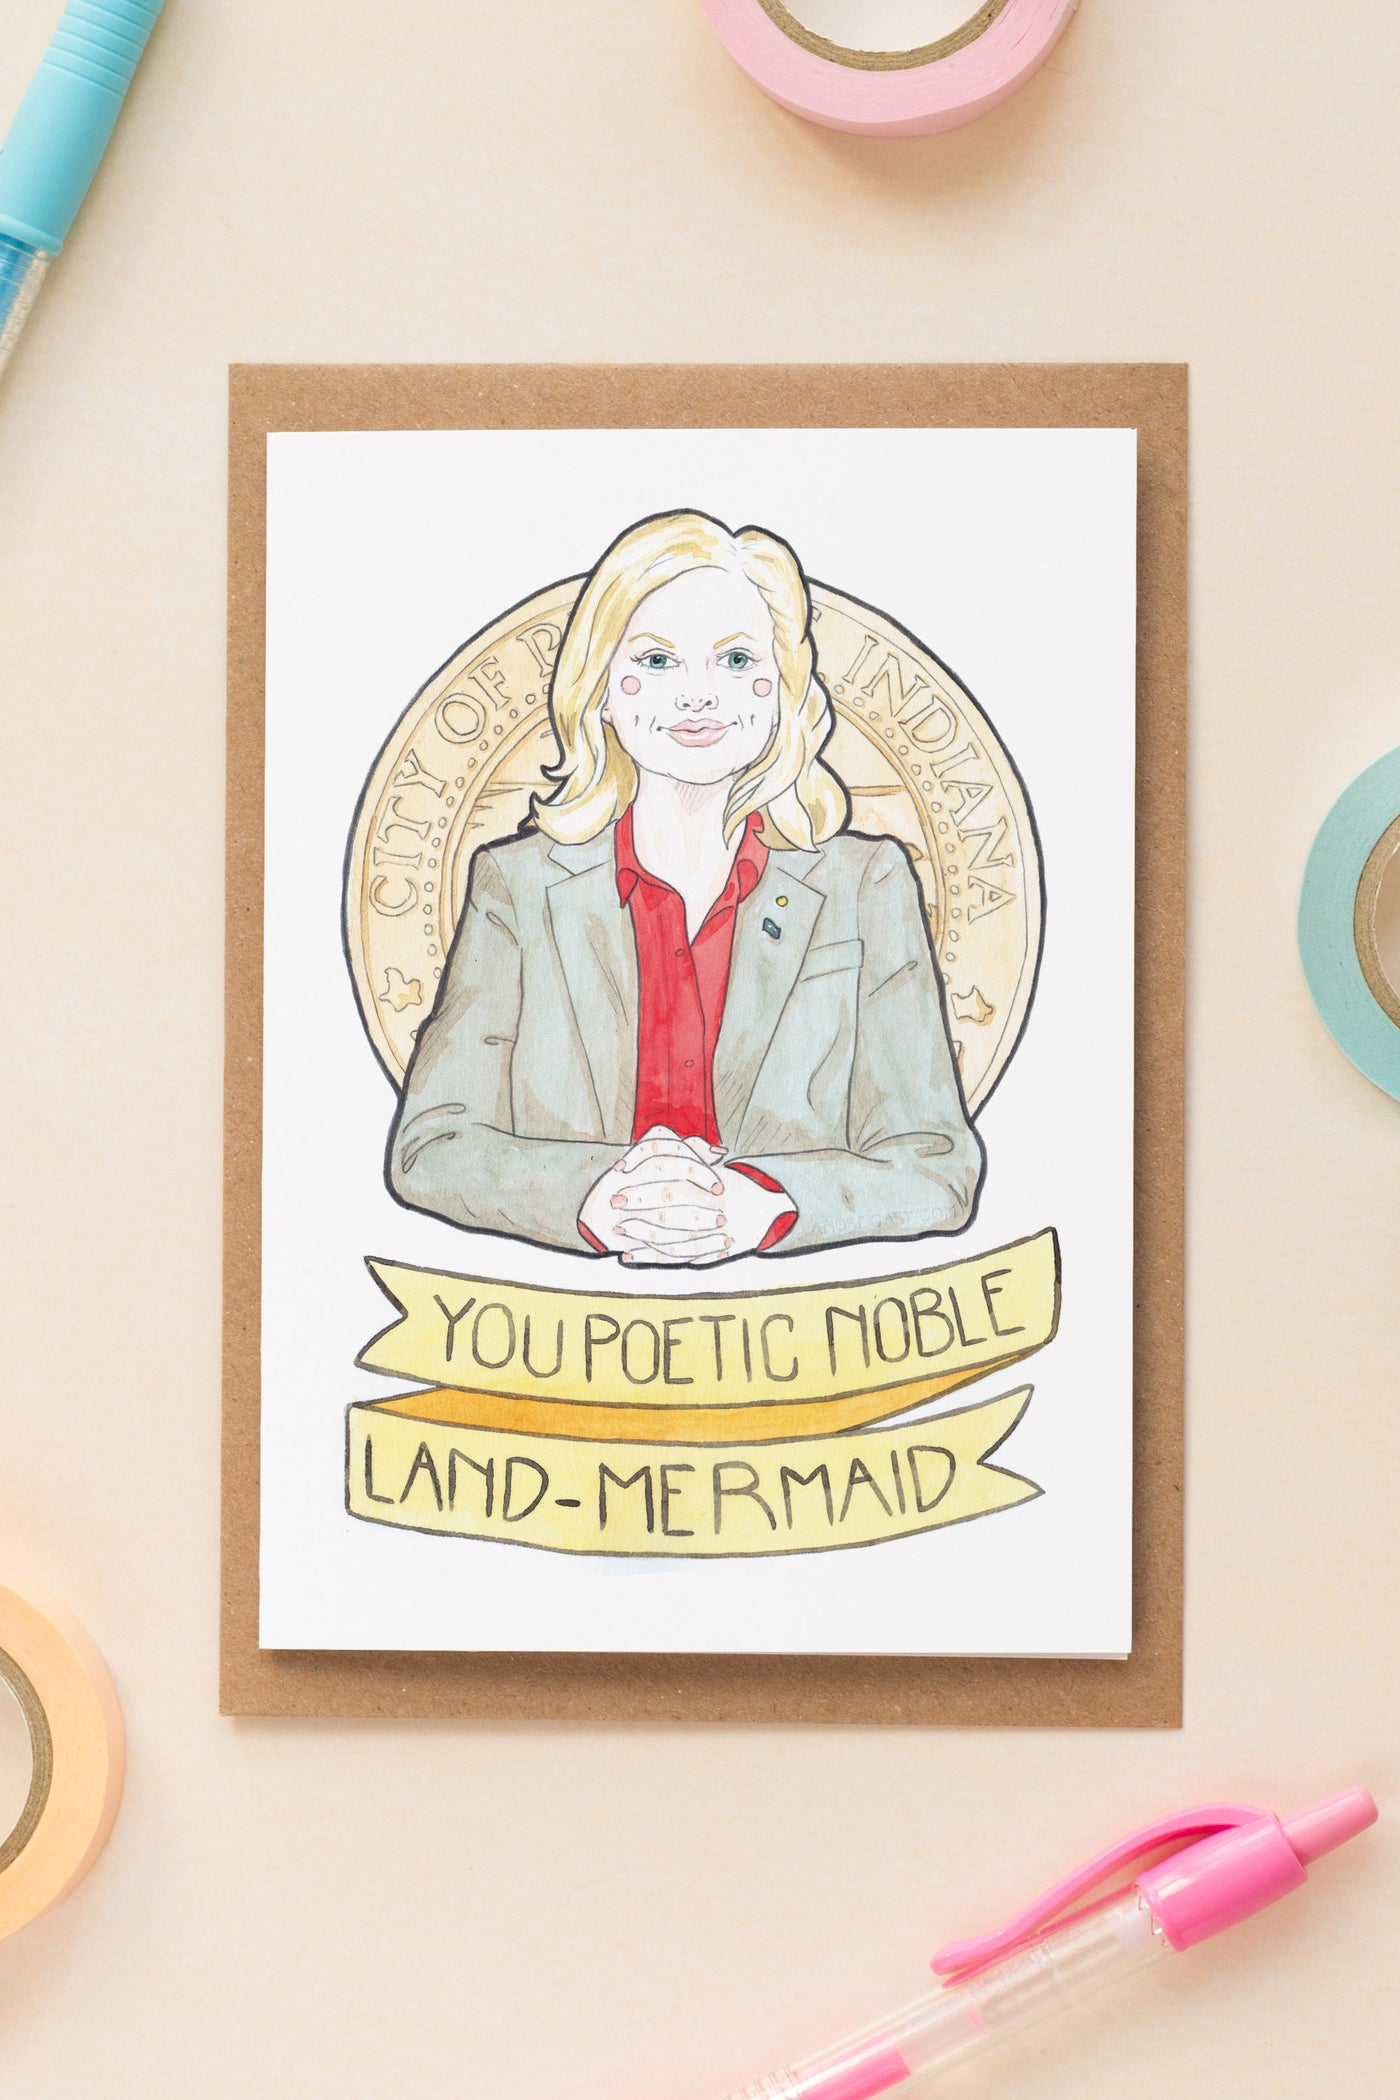 Leslie knope parks rec galentines day friendship greeting leslie knope parks rec galentines day friendship greeting card m4hsunfo